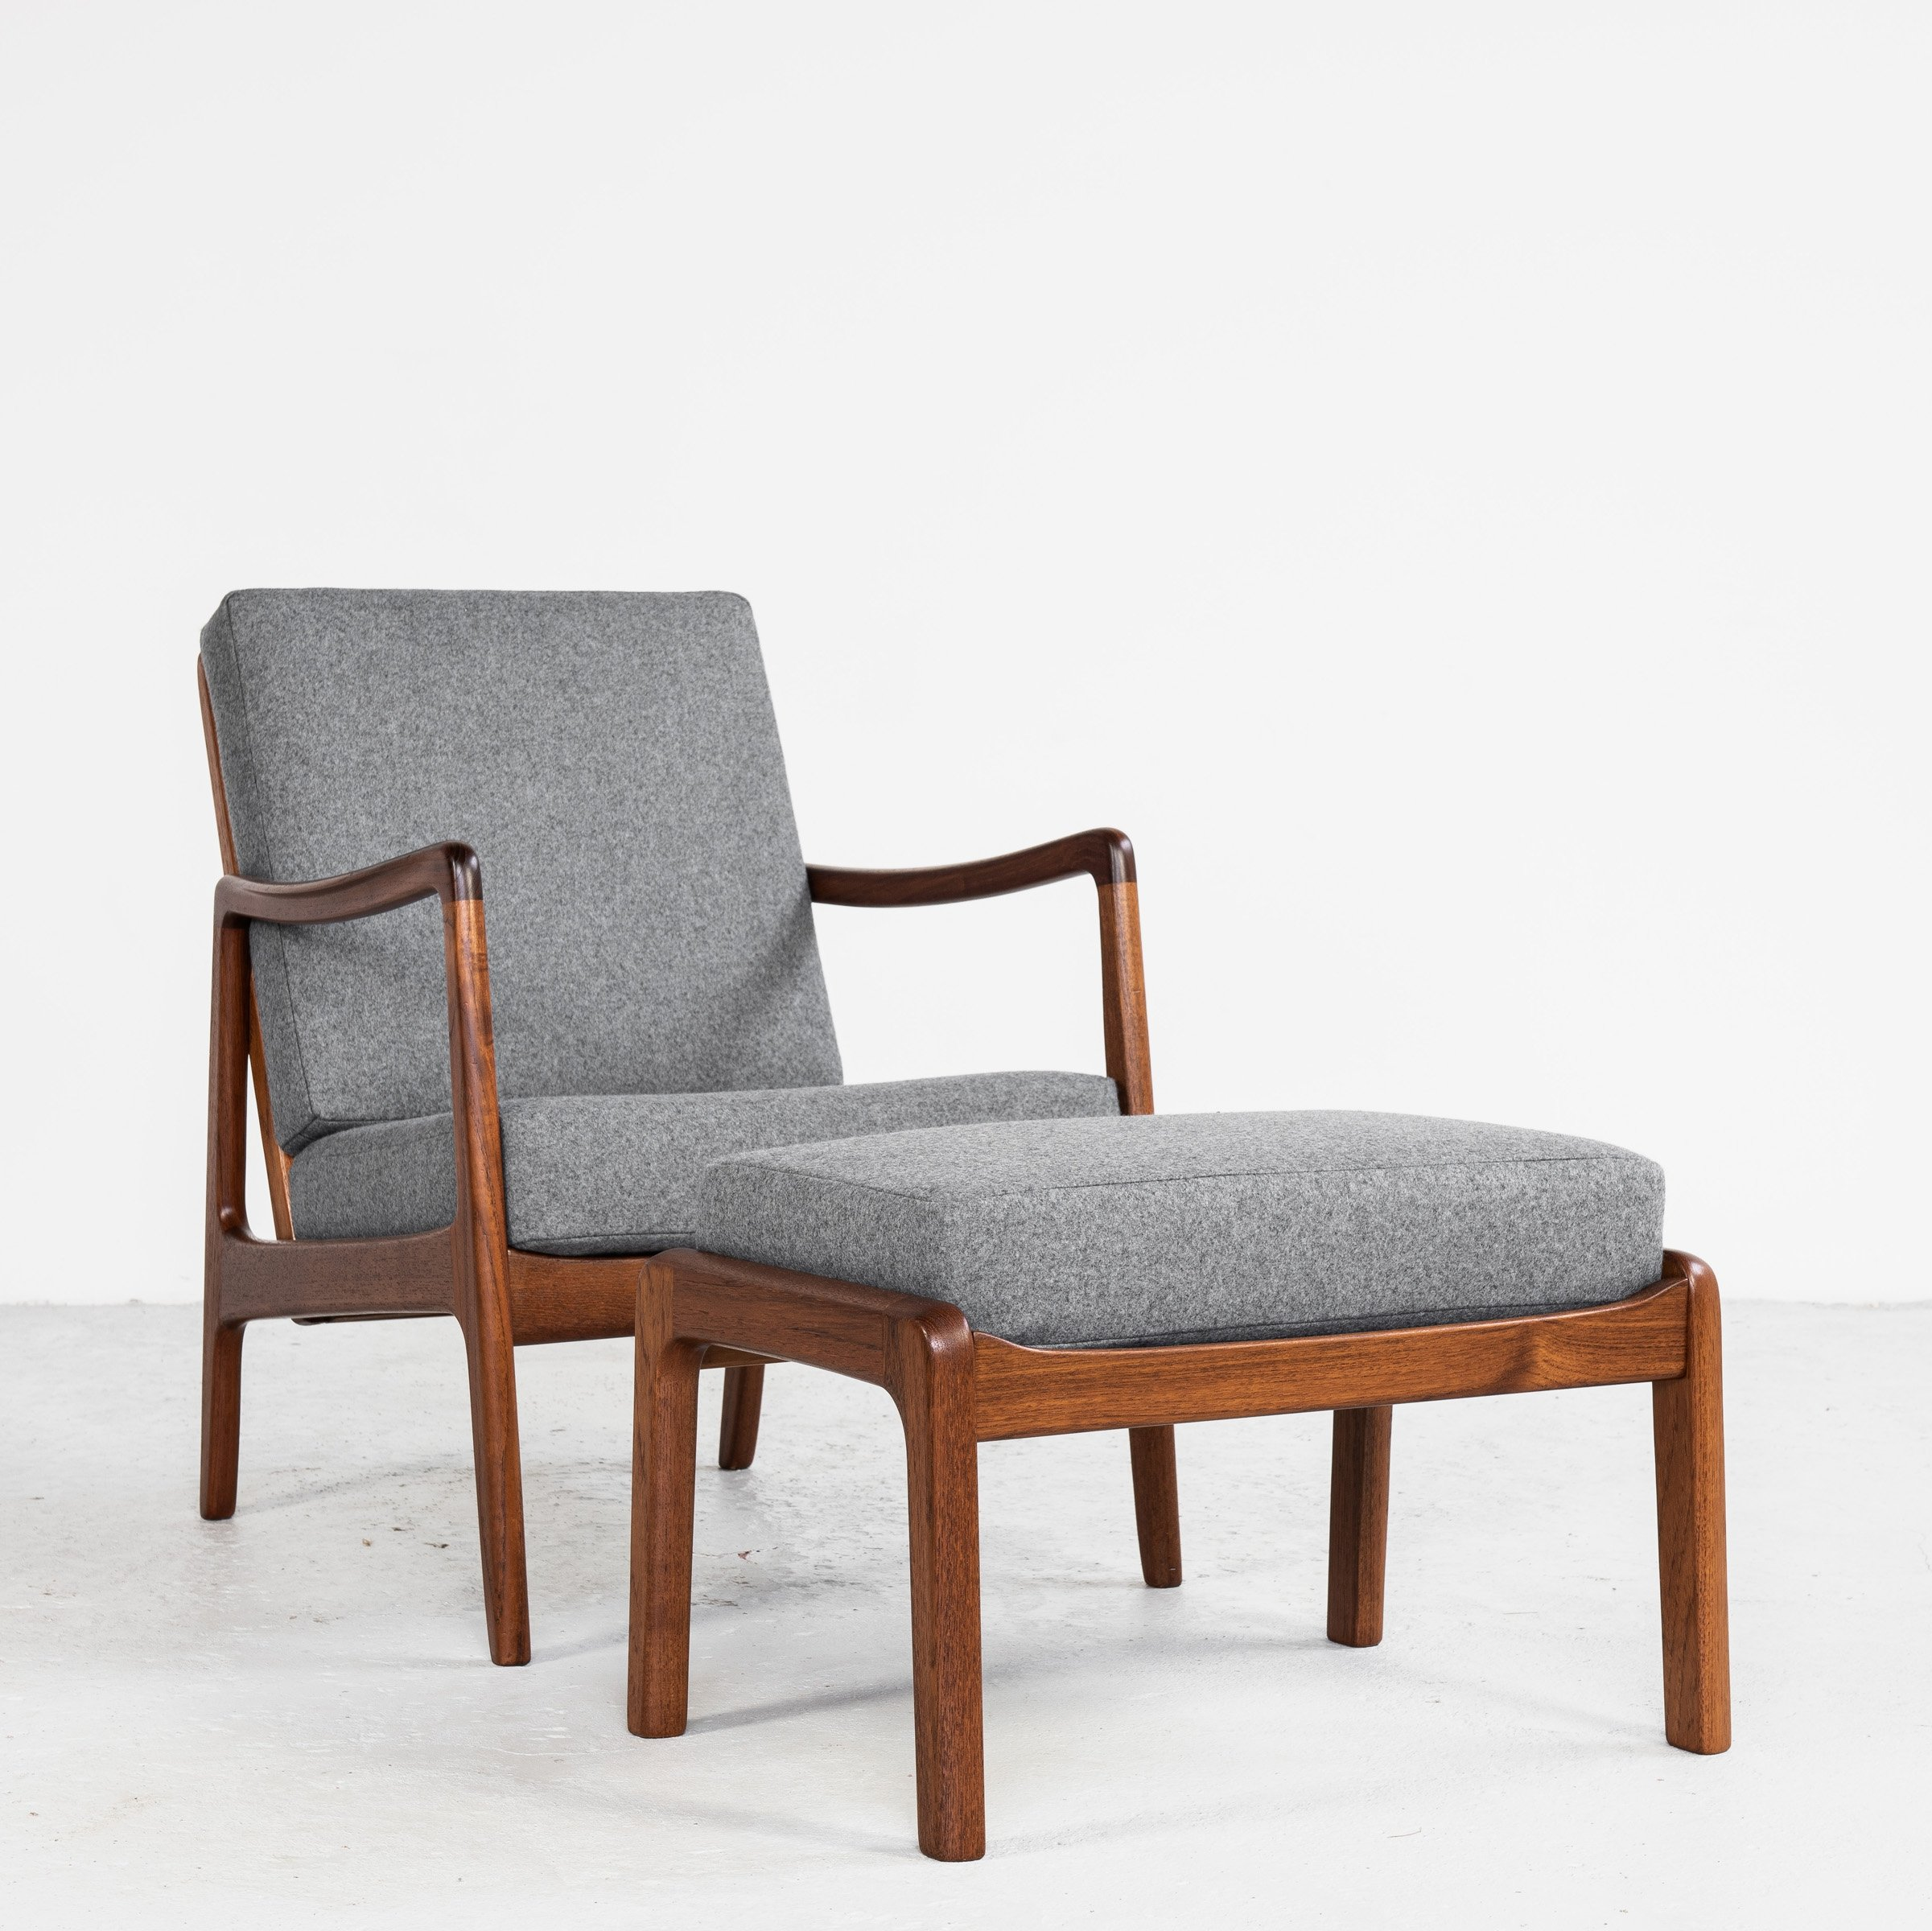 Image of: Midcentury Danish Easy Chair Ottoman In Teak By Ole Wanscher For France Son 137946